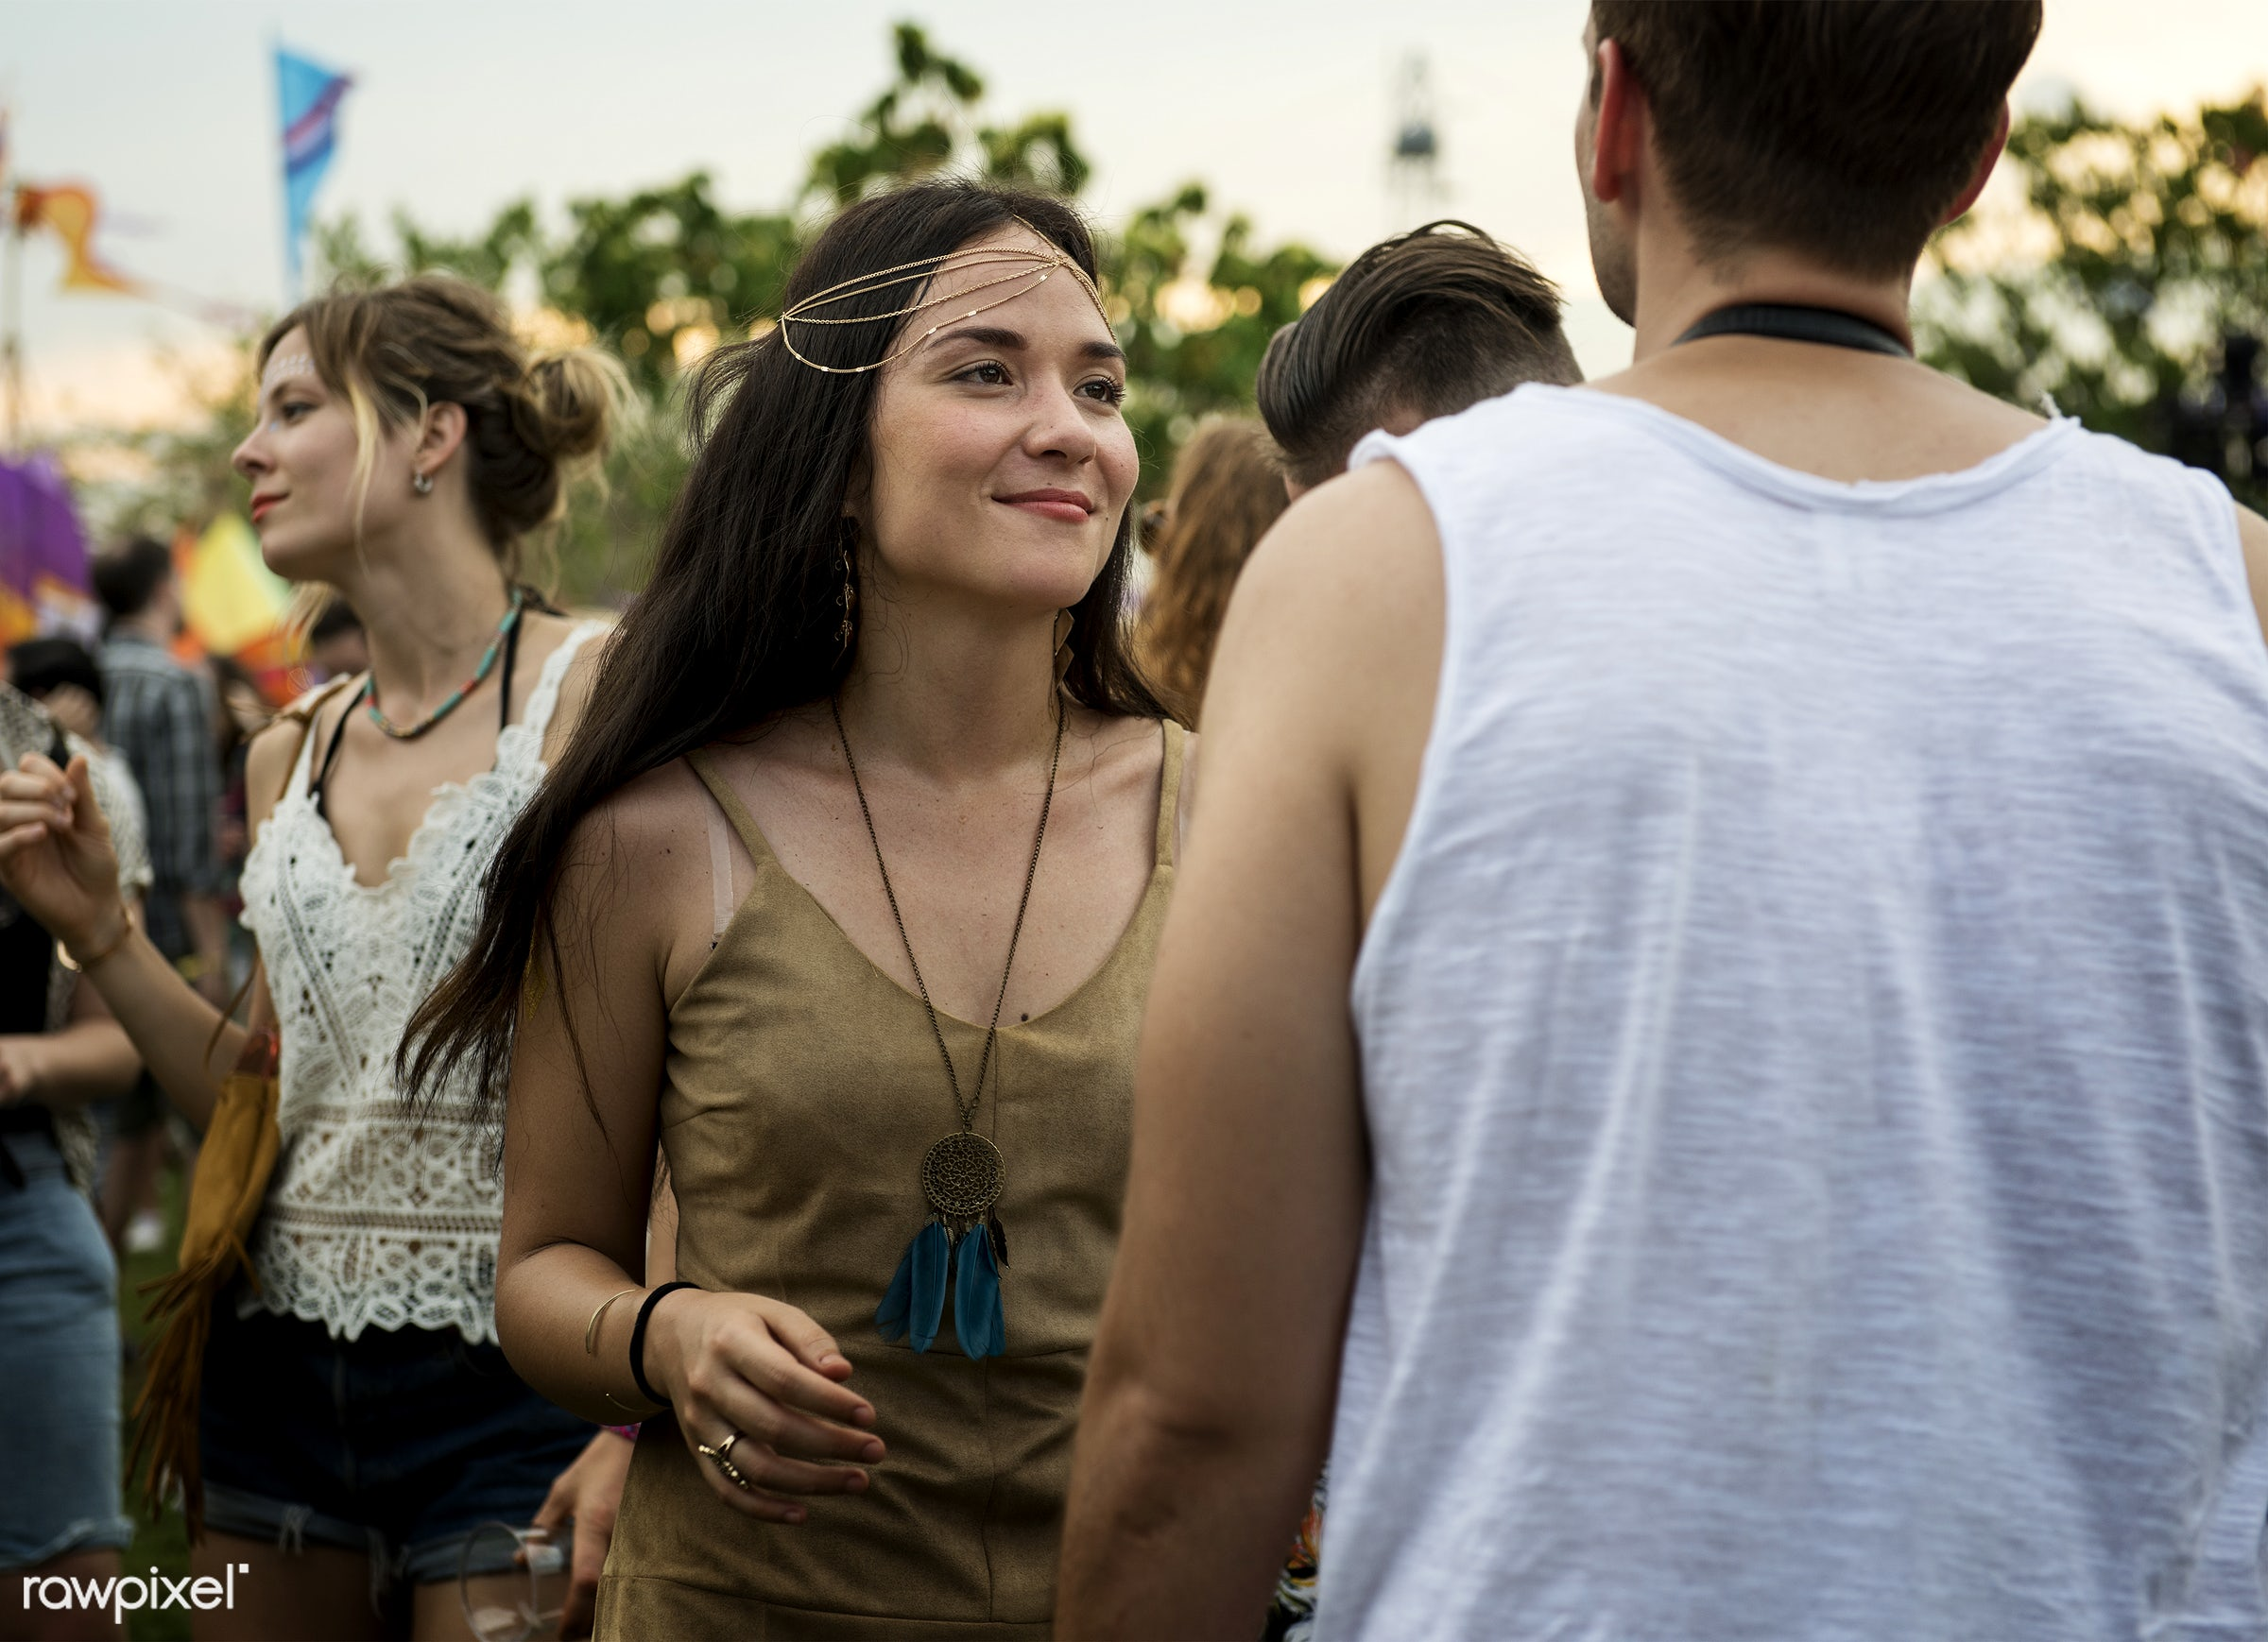 concert, person, relax, carefree, party, people, friends, socializing, hands, event, lifestyle, su, friendship, festival,...